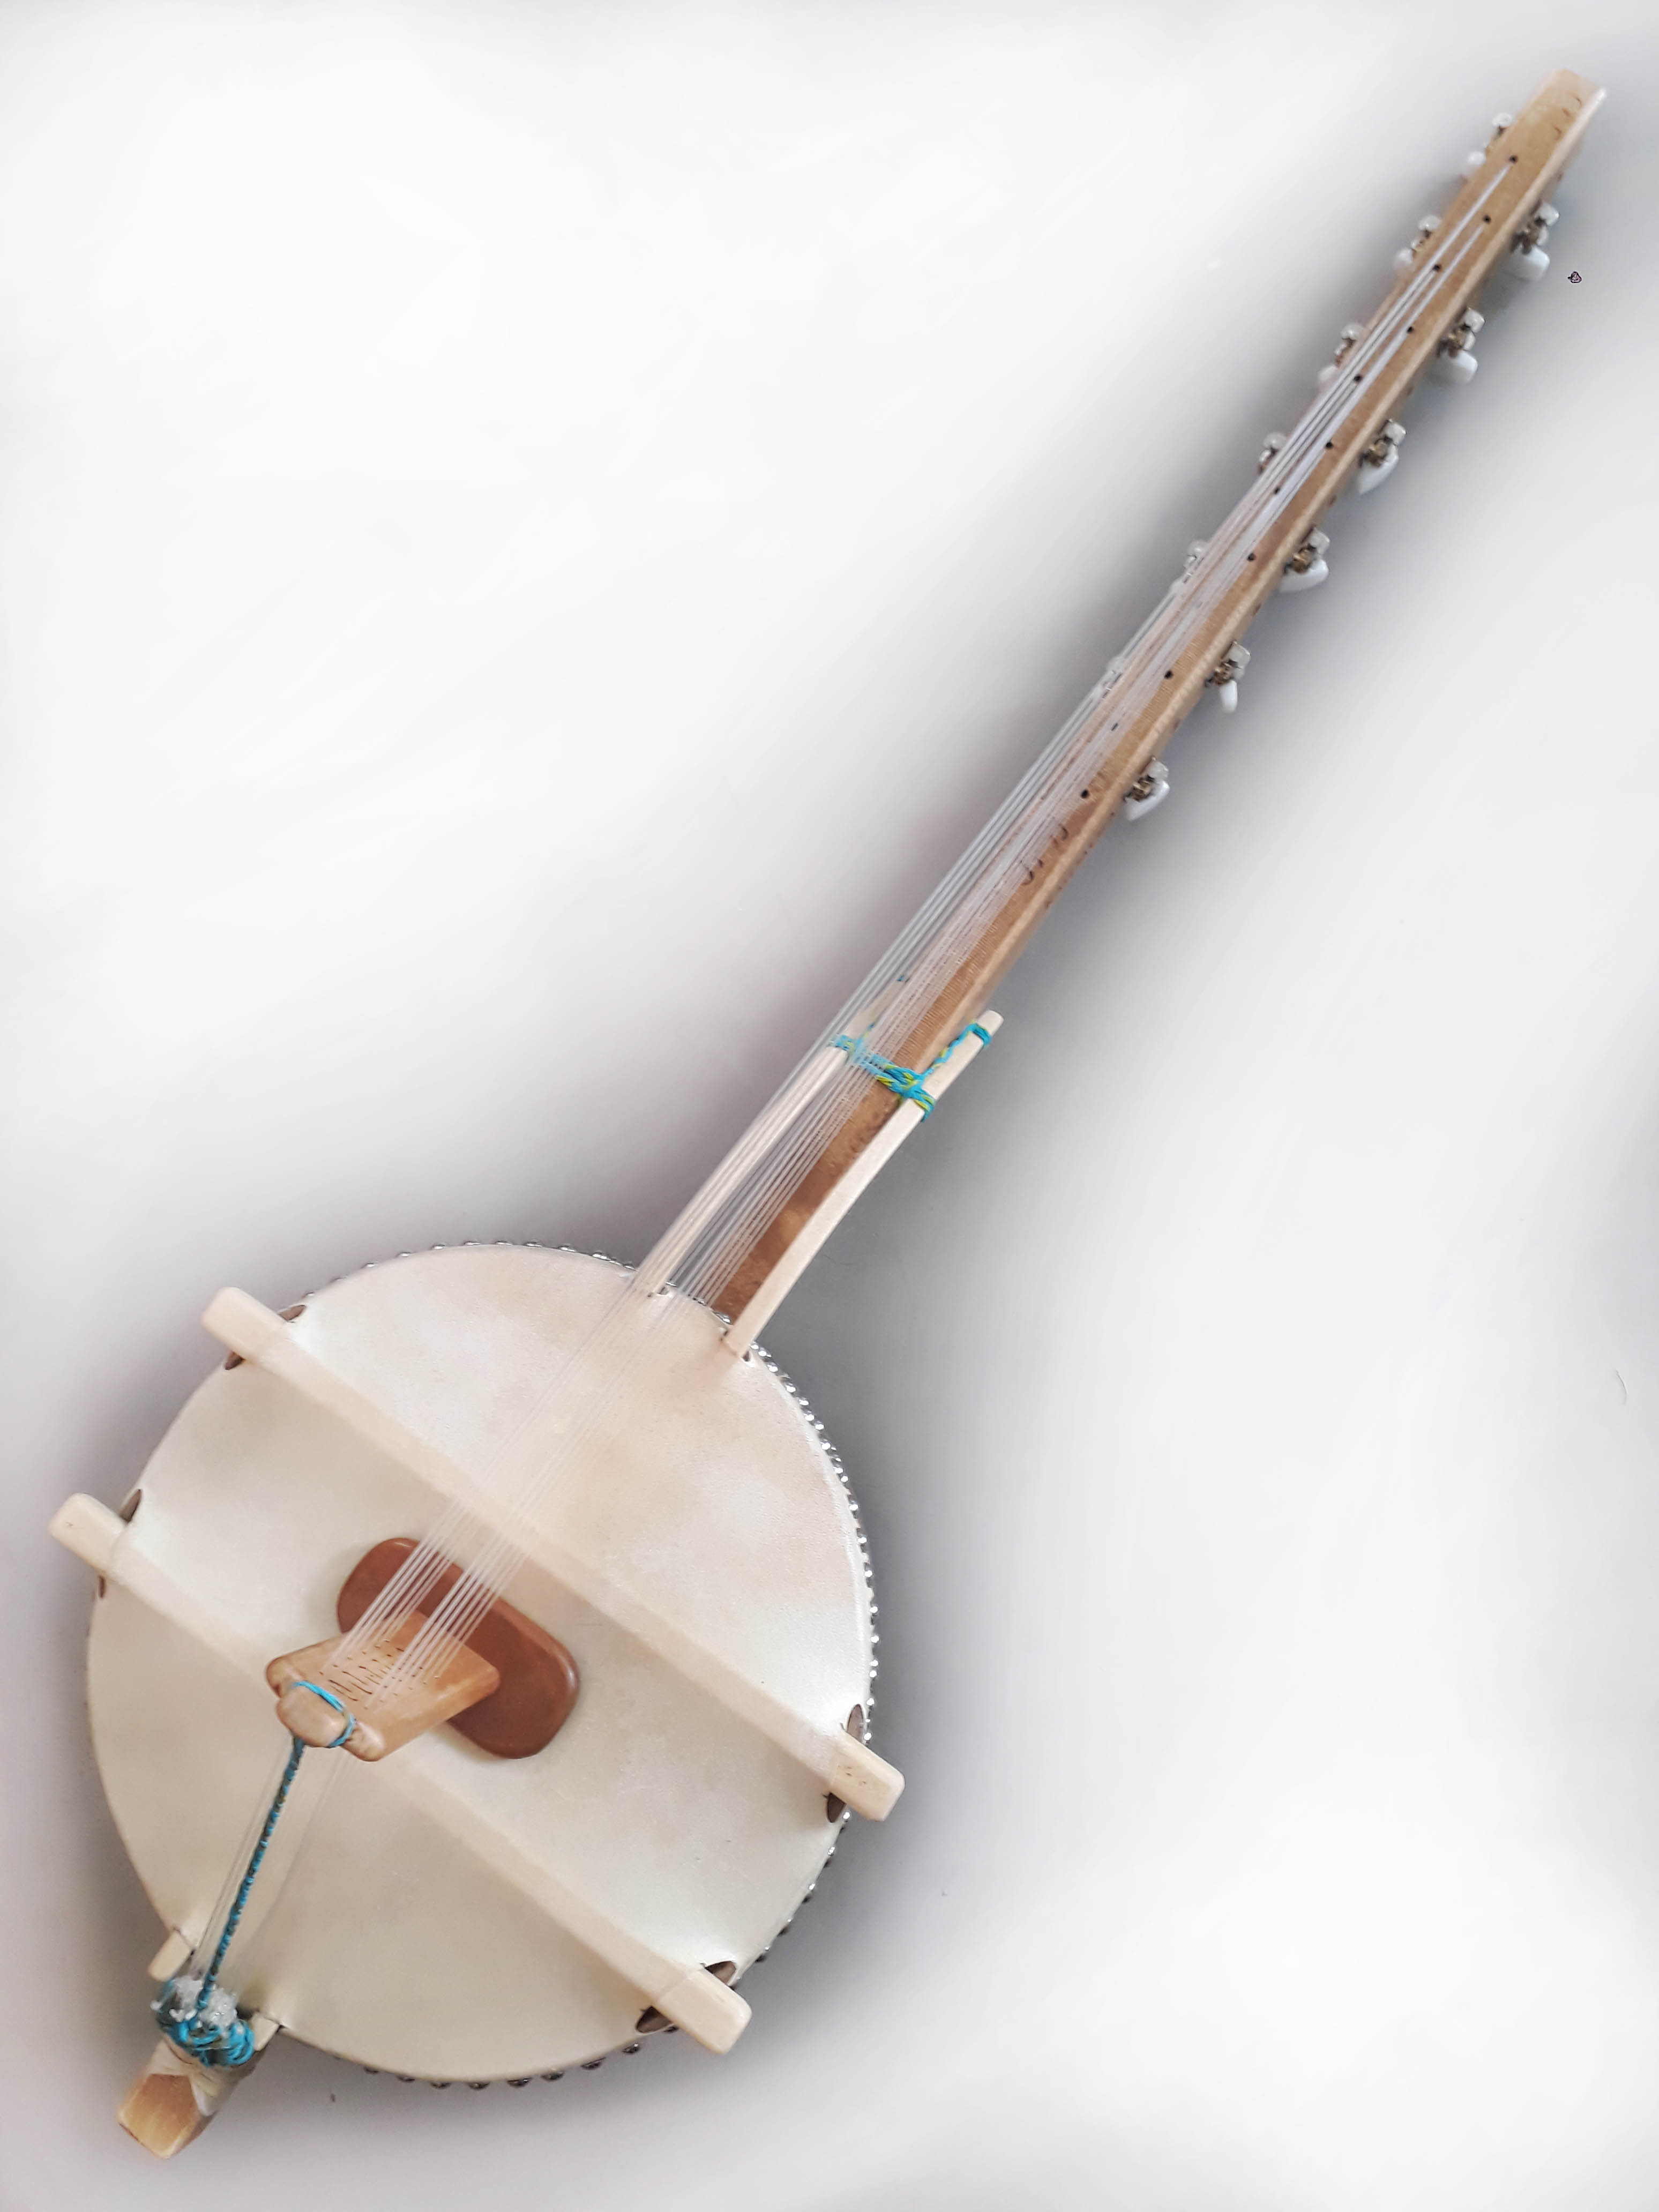 NGONI - Musical Instruments Crafts